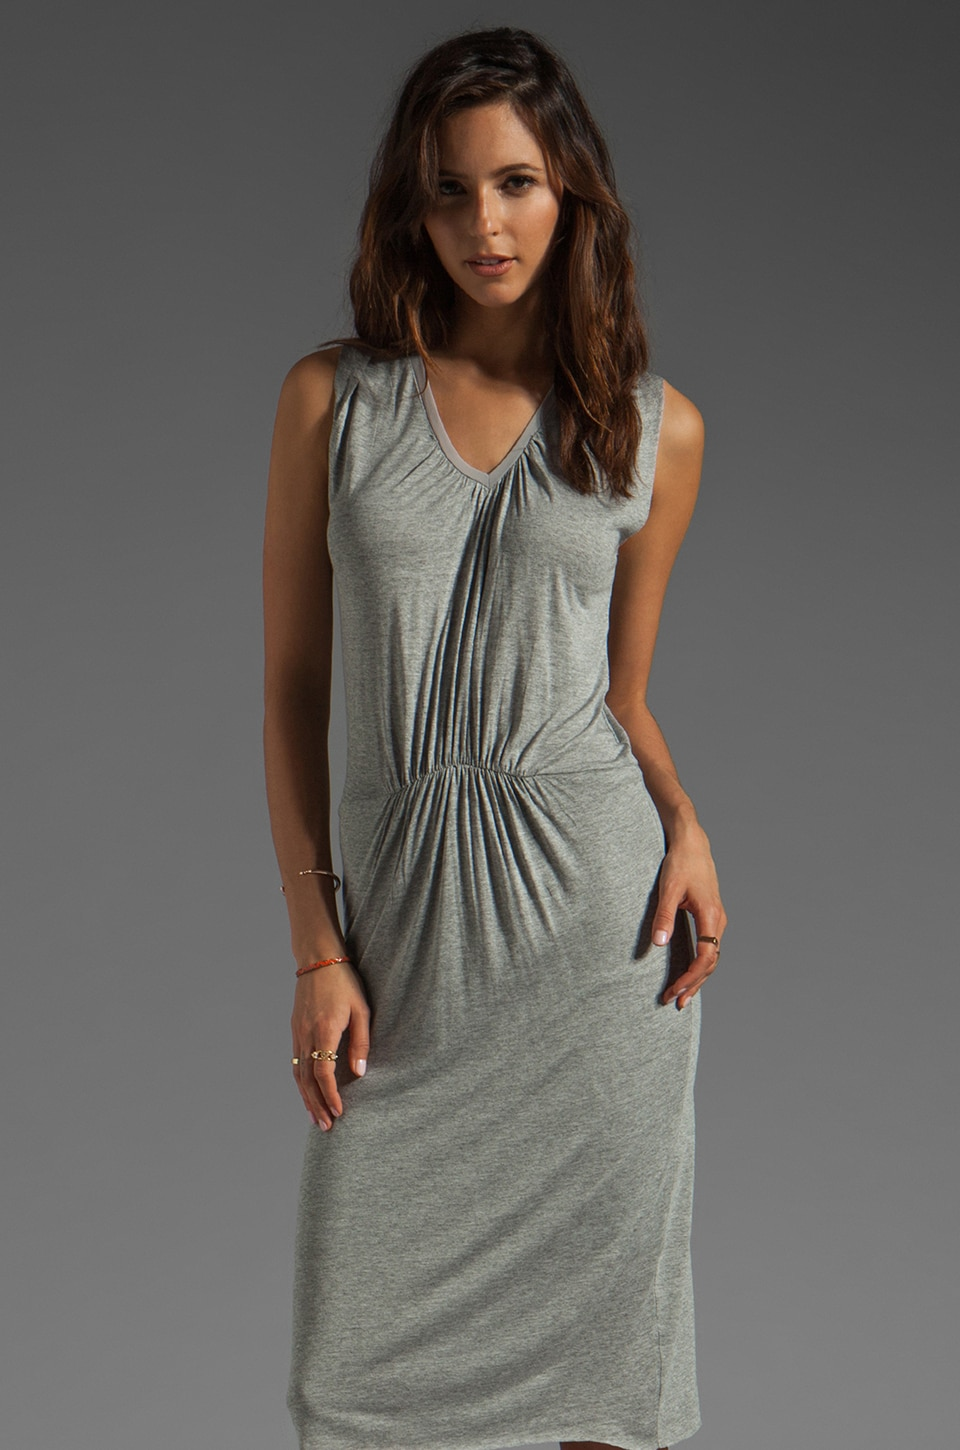 American Vintage Rilato Dress in Heather Grey